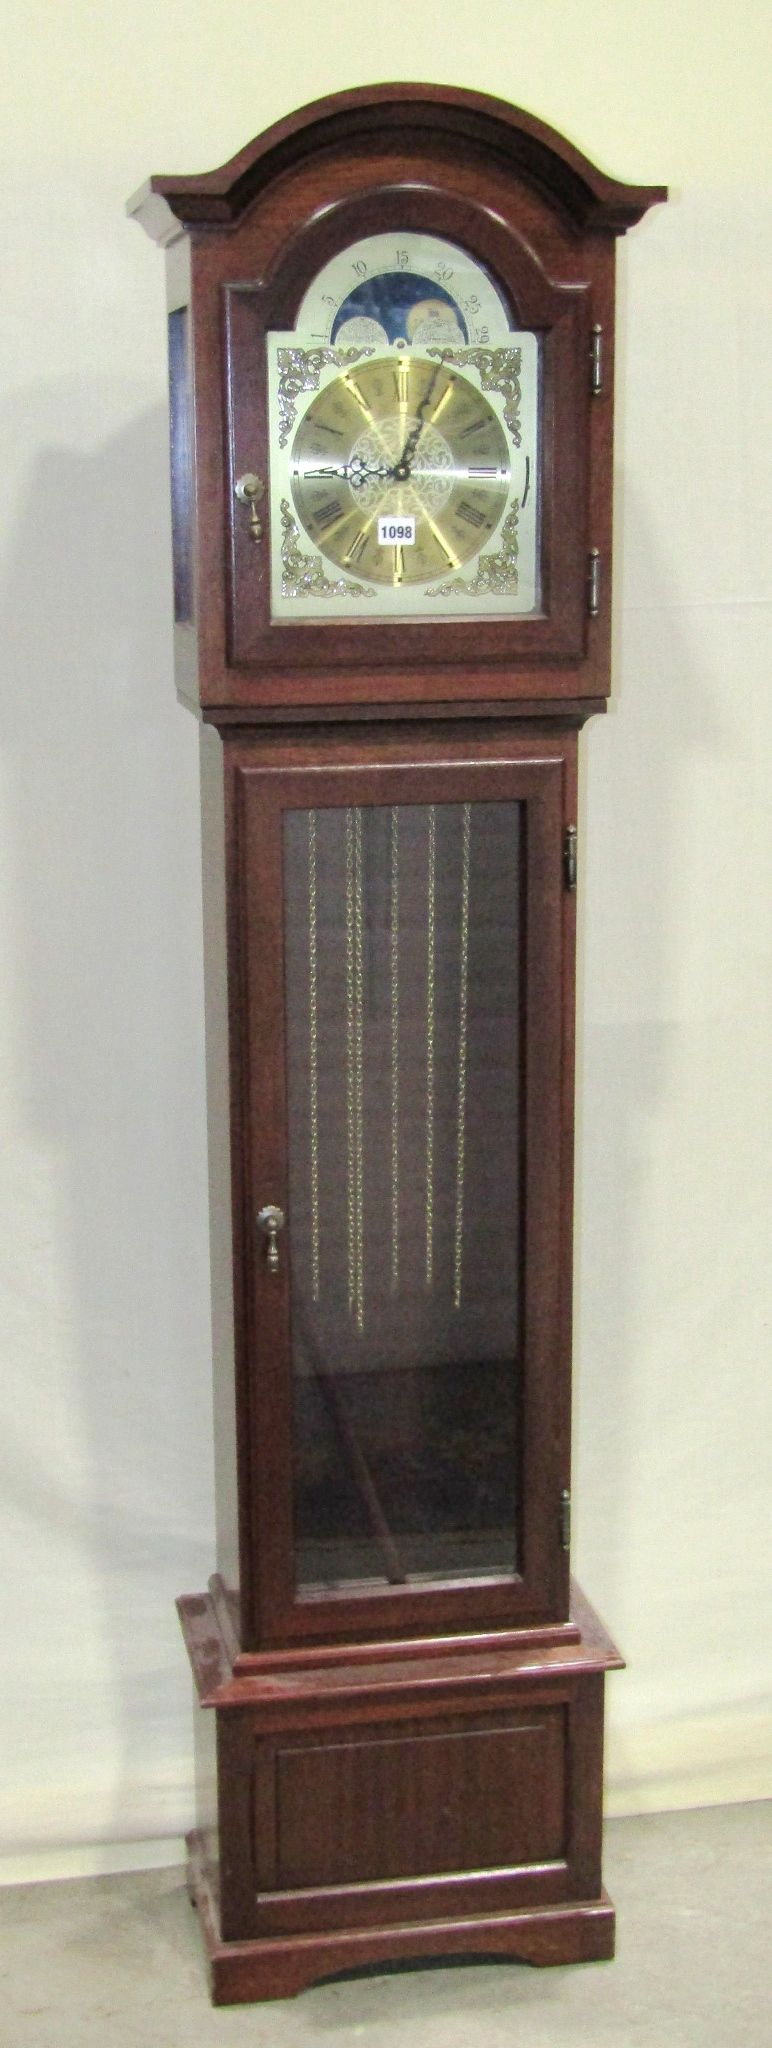 Lot 1098 - A contemporary reproduction small longcase or grandmother clock with arched hood and dial with